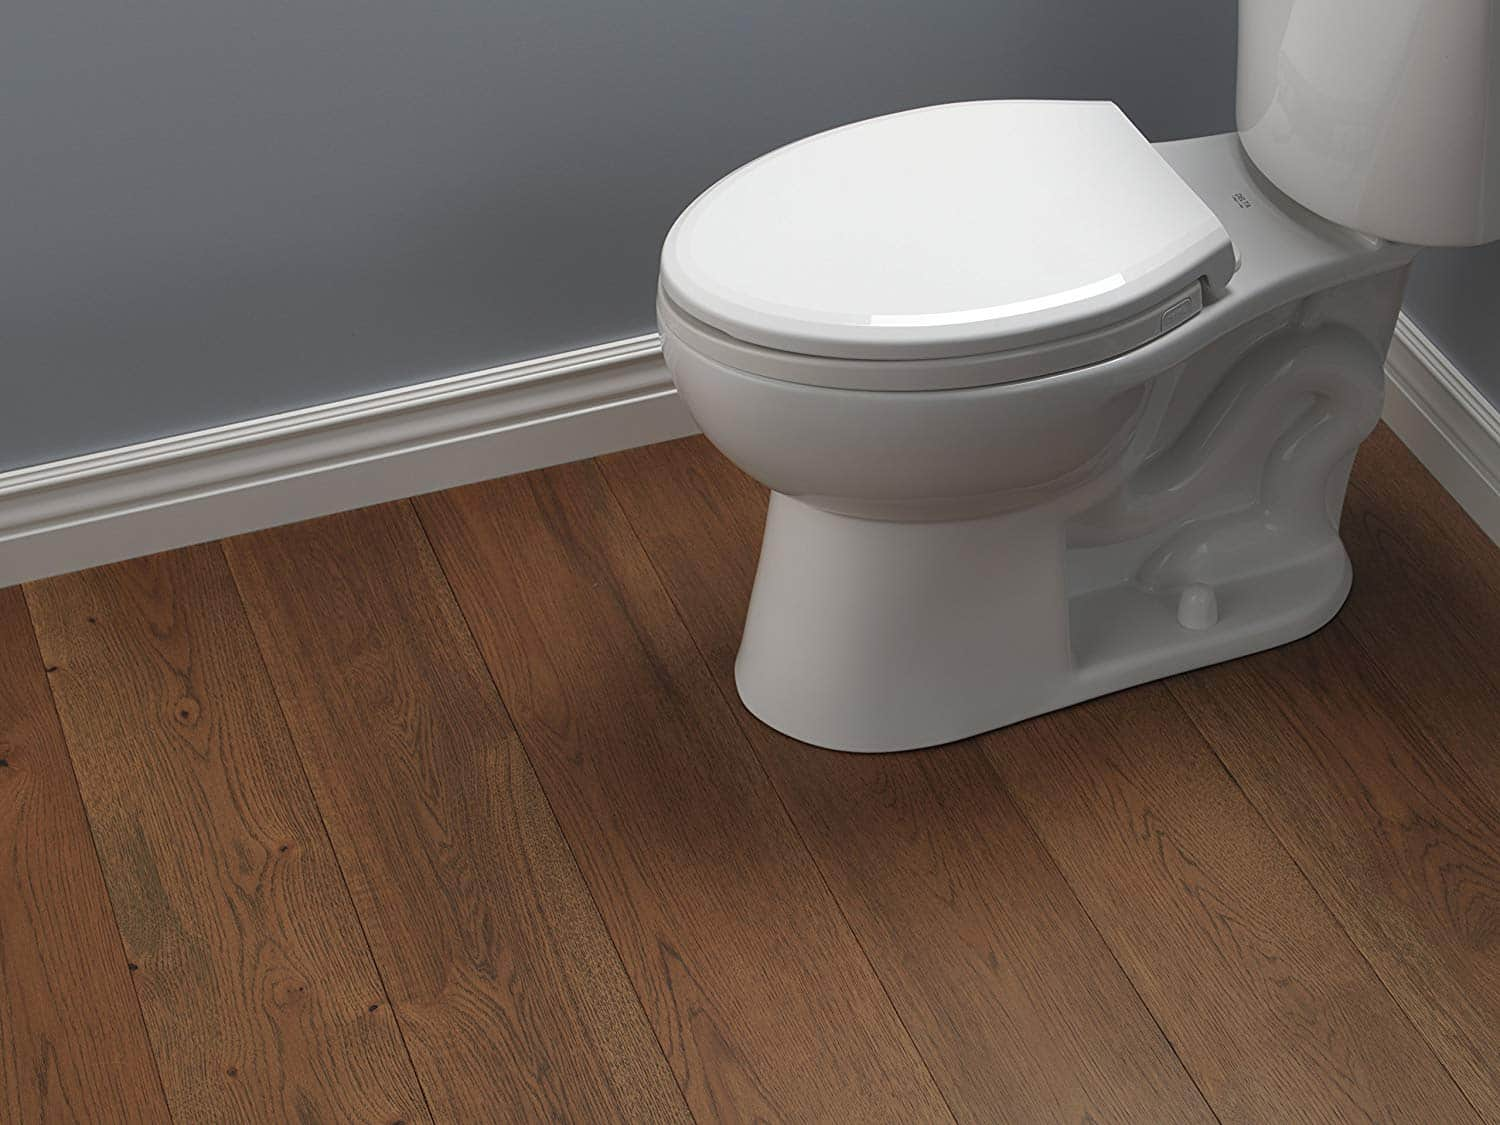 Soft /& Comfy Cushioned Toilet Seat Replacement w// Wood Core for Elongated Bowls